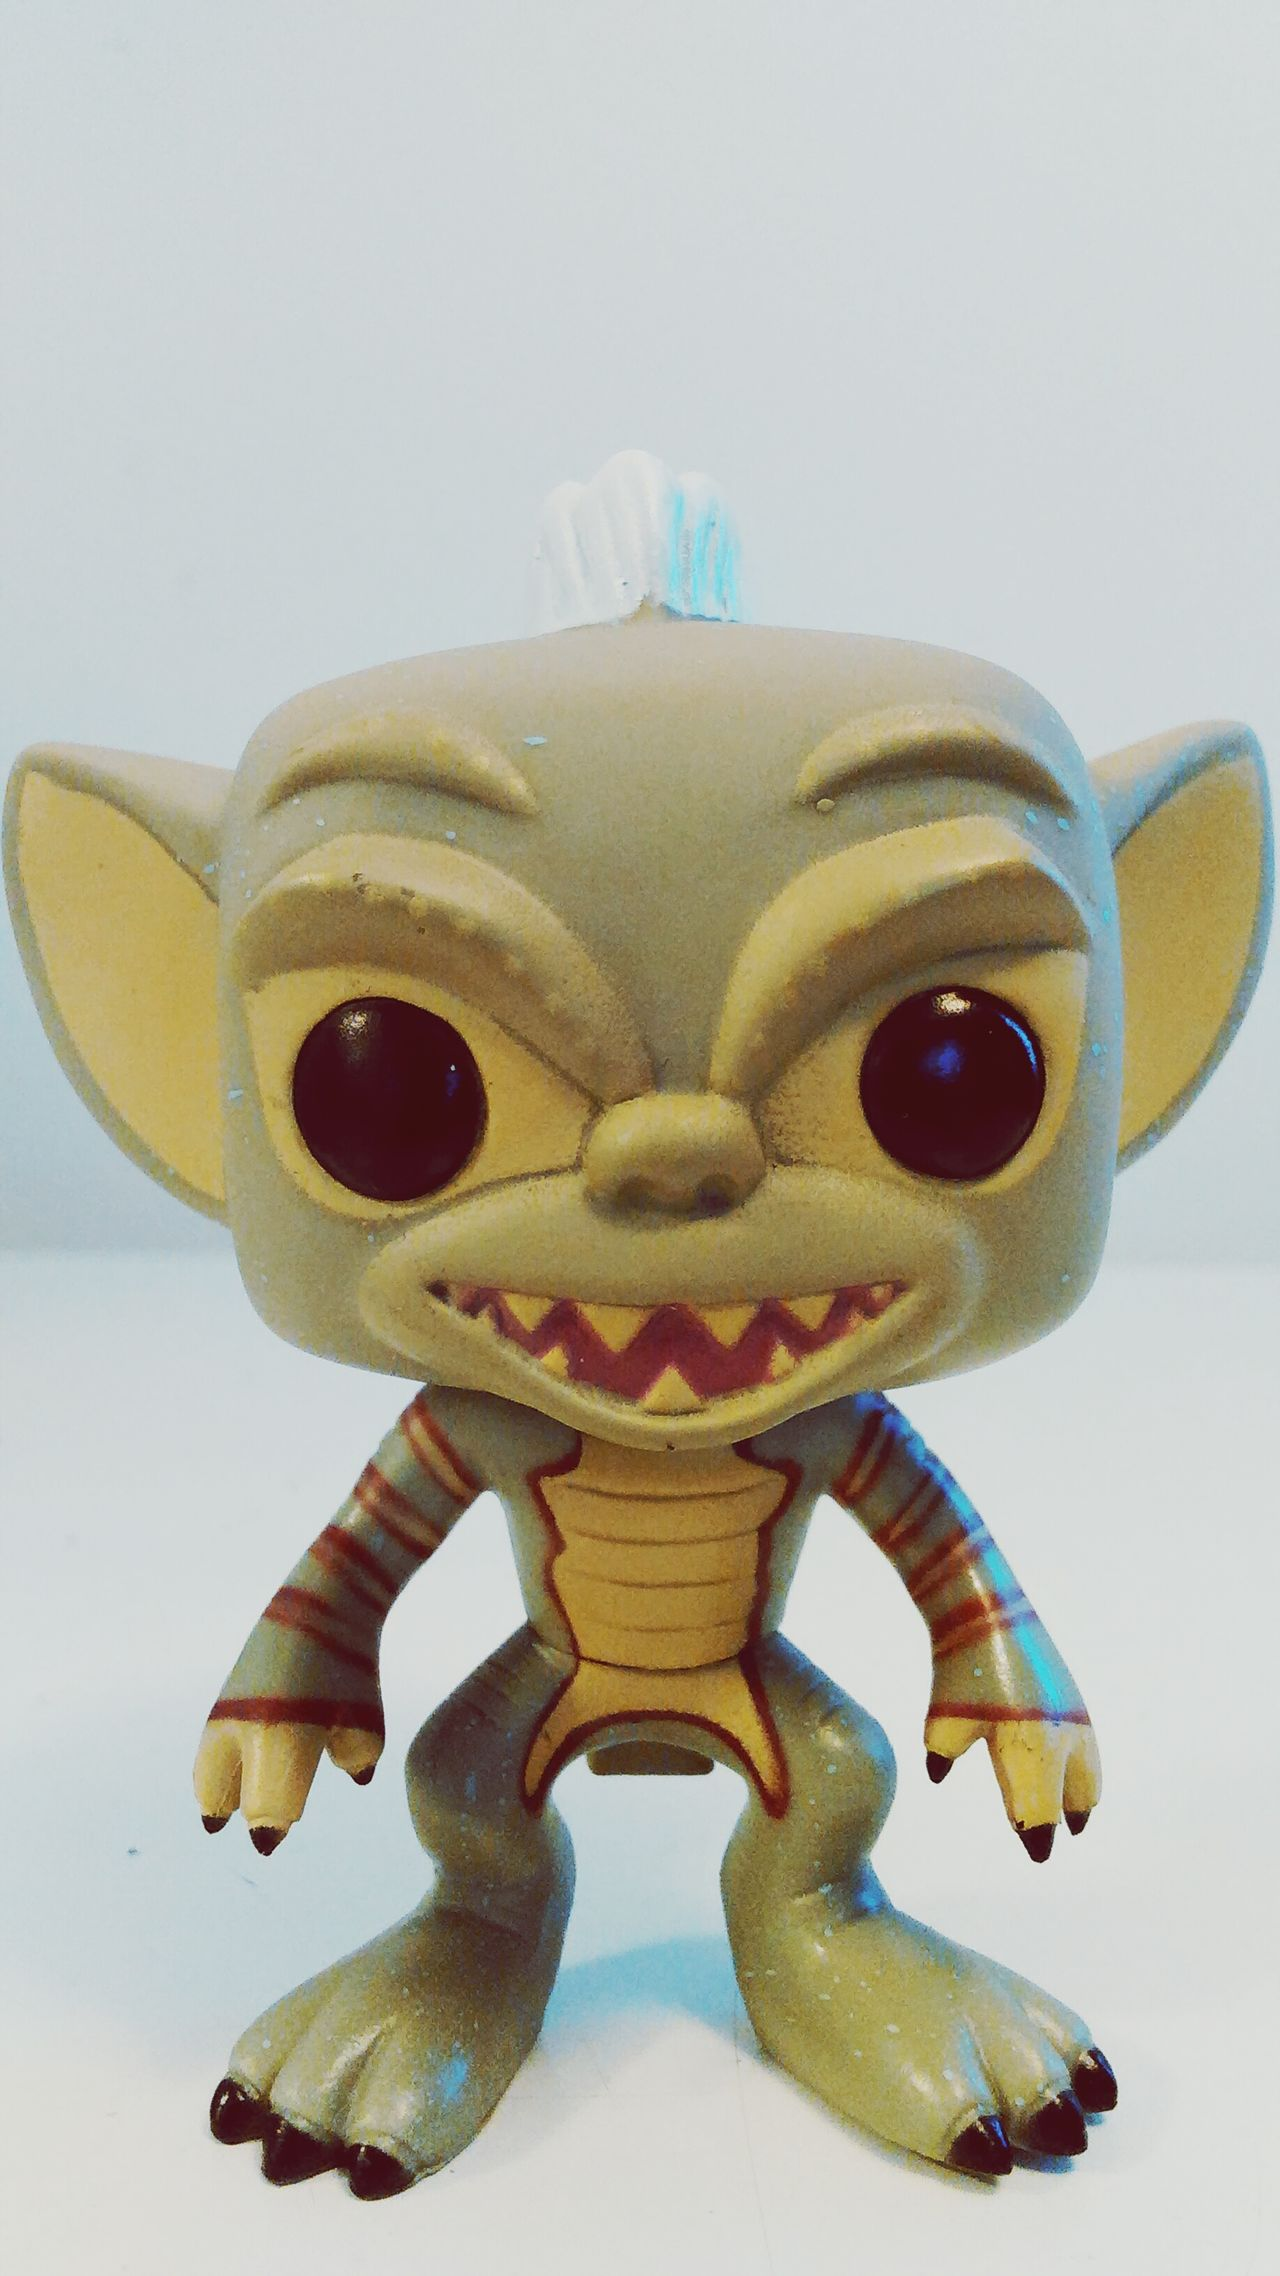 Standing Gremlins Gremlin Multi Colored Green In Front Of Childhood 80smovies Toy Amazing Still Life Funkopopvinyl Popfunko Upclose  Imagination Front View Eyem Best Shots Colorful Vibrant Color Badlittlething Memories Representation Indoors  Bestever Creaturefeature